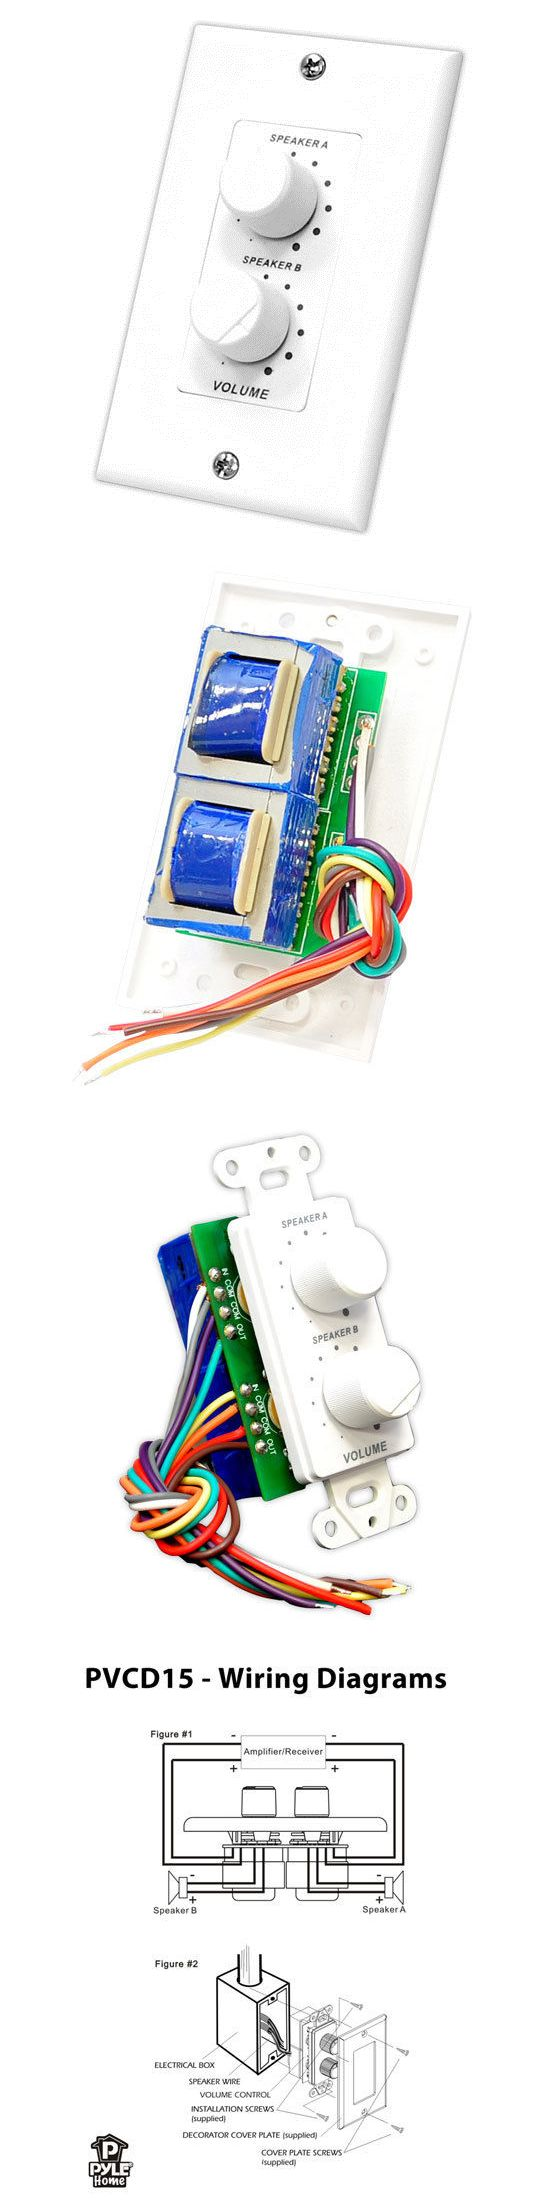 Pyle In Wall Right Left Speaker Dual Knob Separate Volume Sound Wiring Diagram For Control Pvcd15 Other Home Stereo Components 81741 Pinterest Speakers Junction Boxes